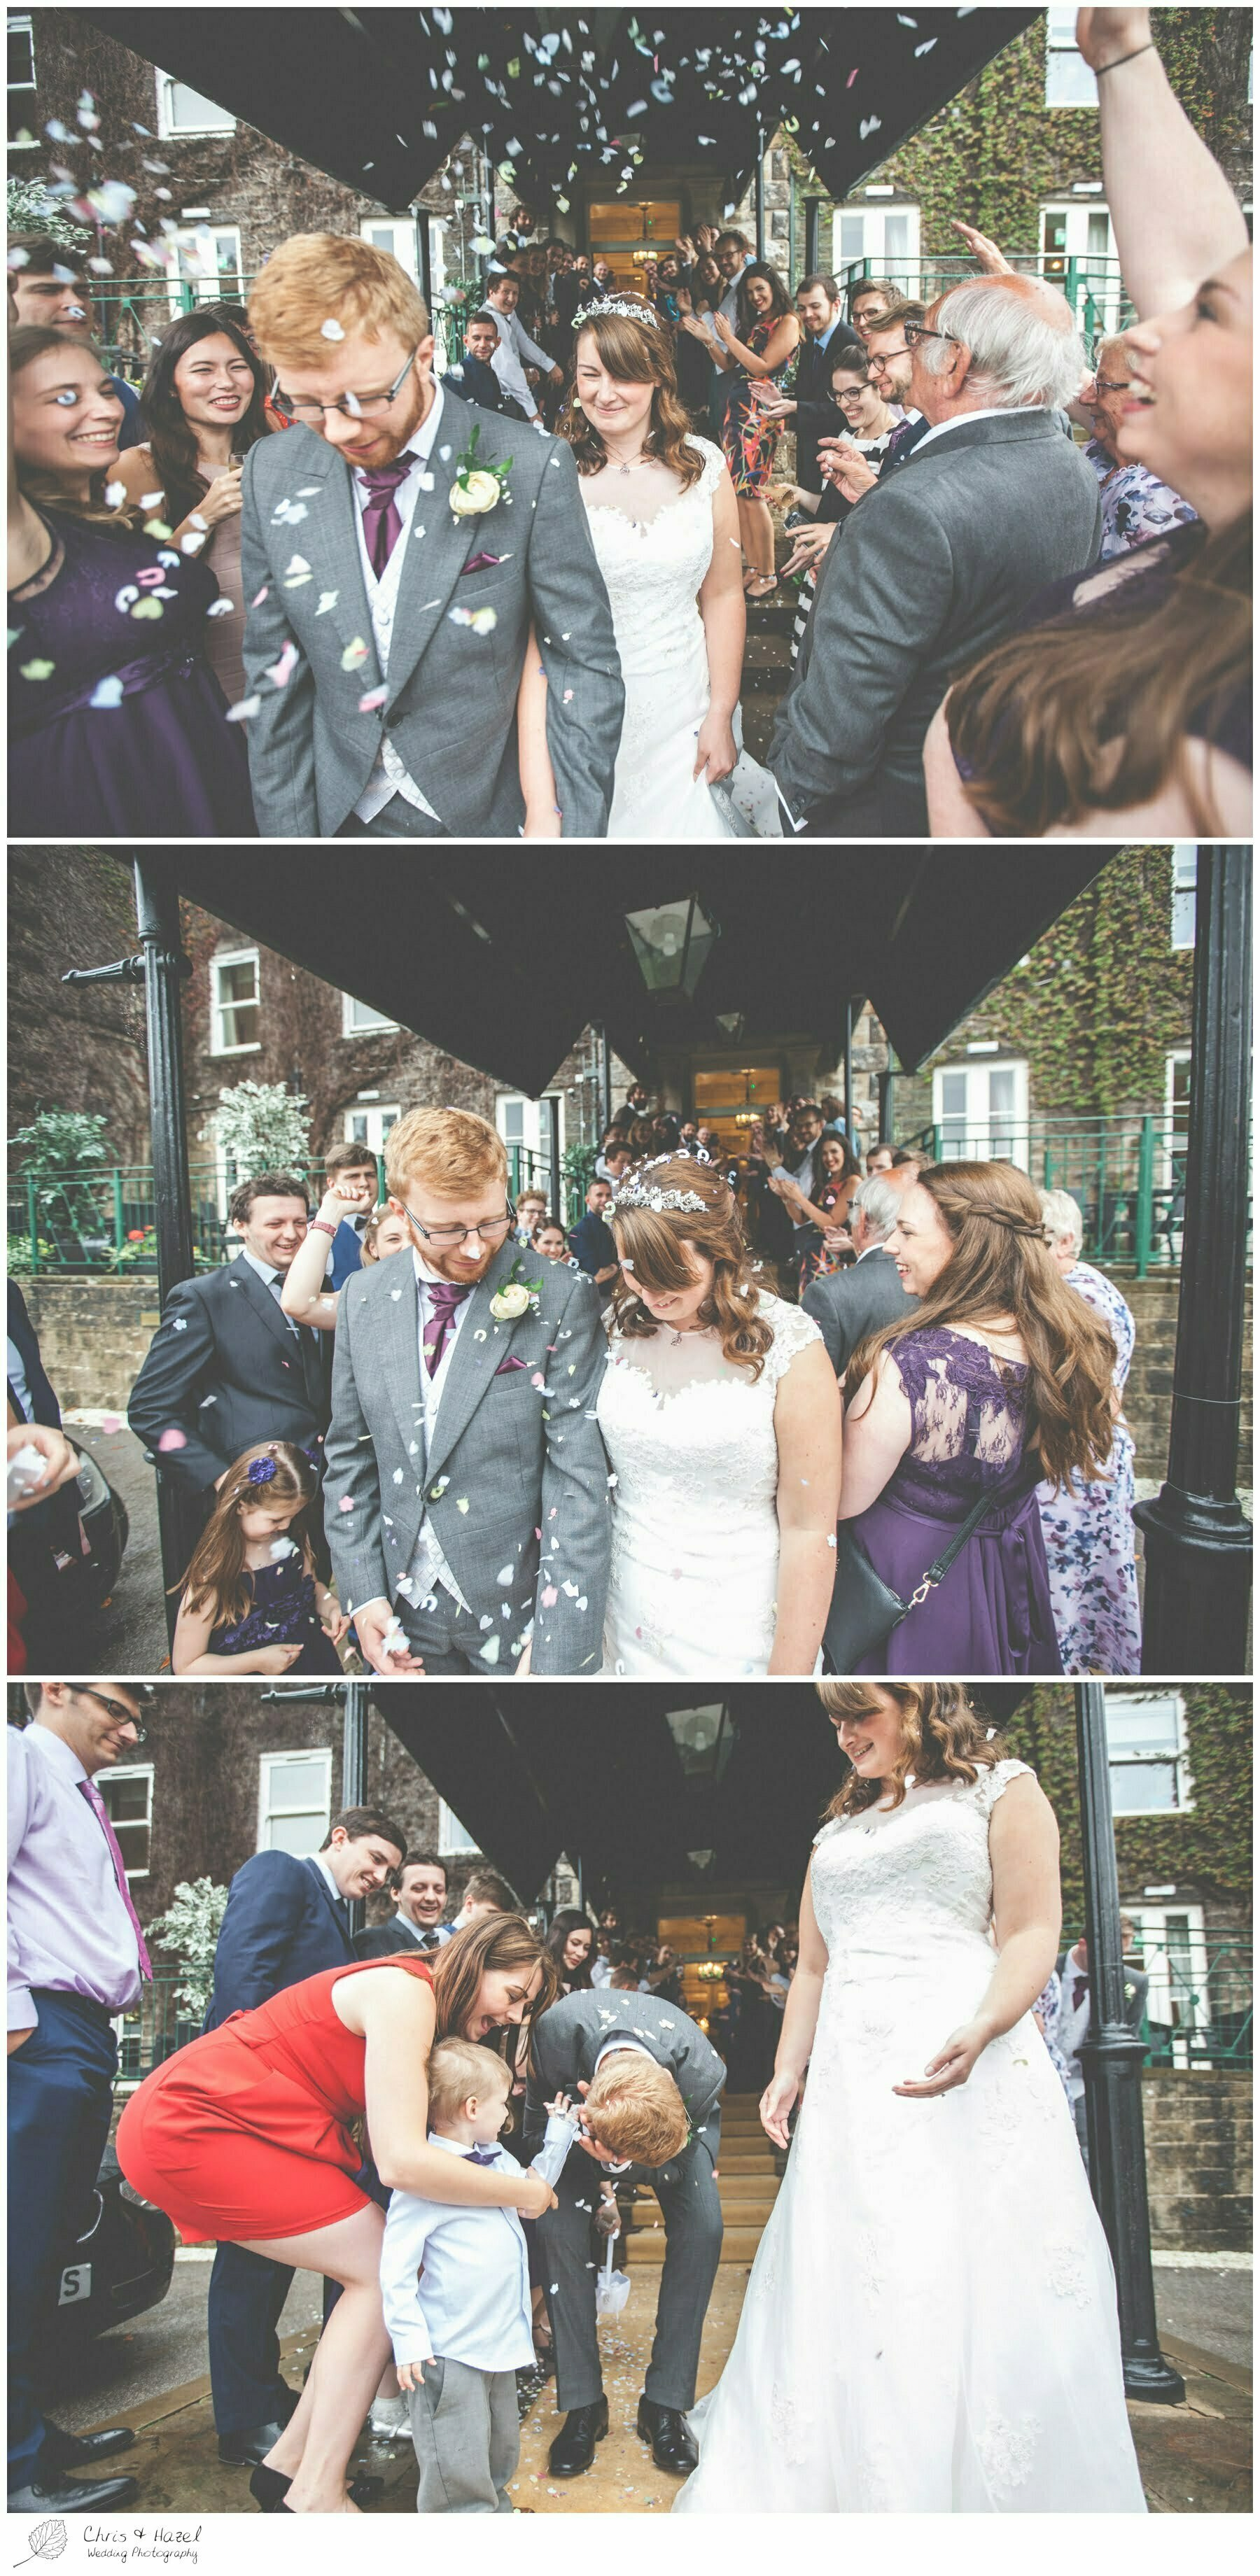 bride and groom covered in confetti, documentary wedding photography, Ilkley wedding photographer, Ilkley wedding photography, The Craiglands hotel wedding photography, west Yorkshire wedding photography, chris and hazel wedding photography, emily nunwick, sam nicholson, emily nicholson,